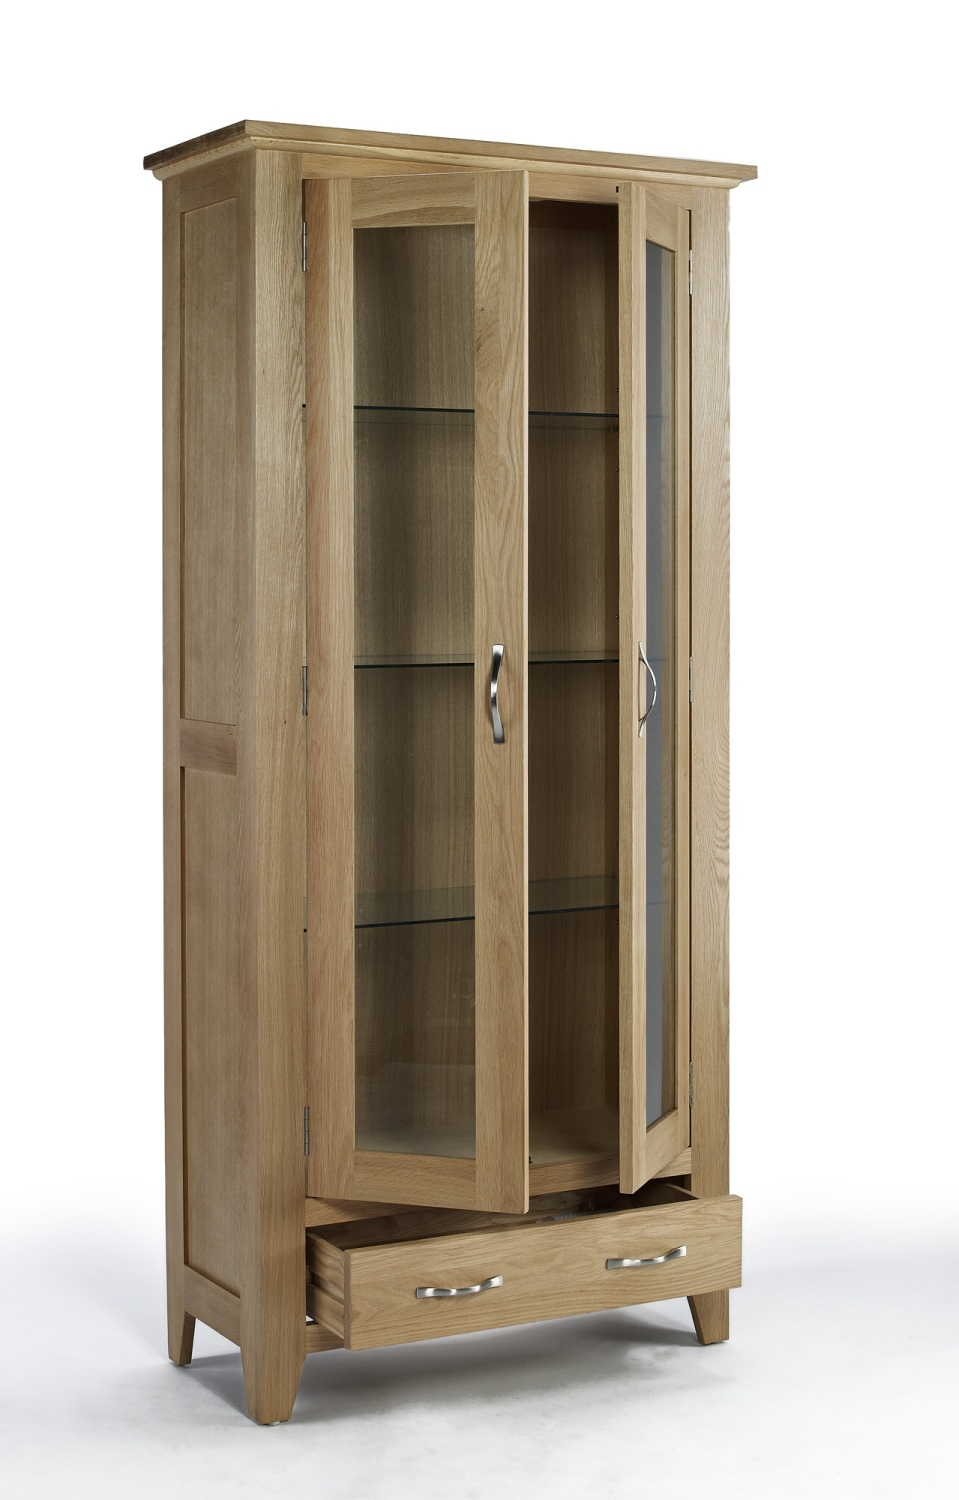 Compton Solid Oak Furniture Living Room Hallway Display